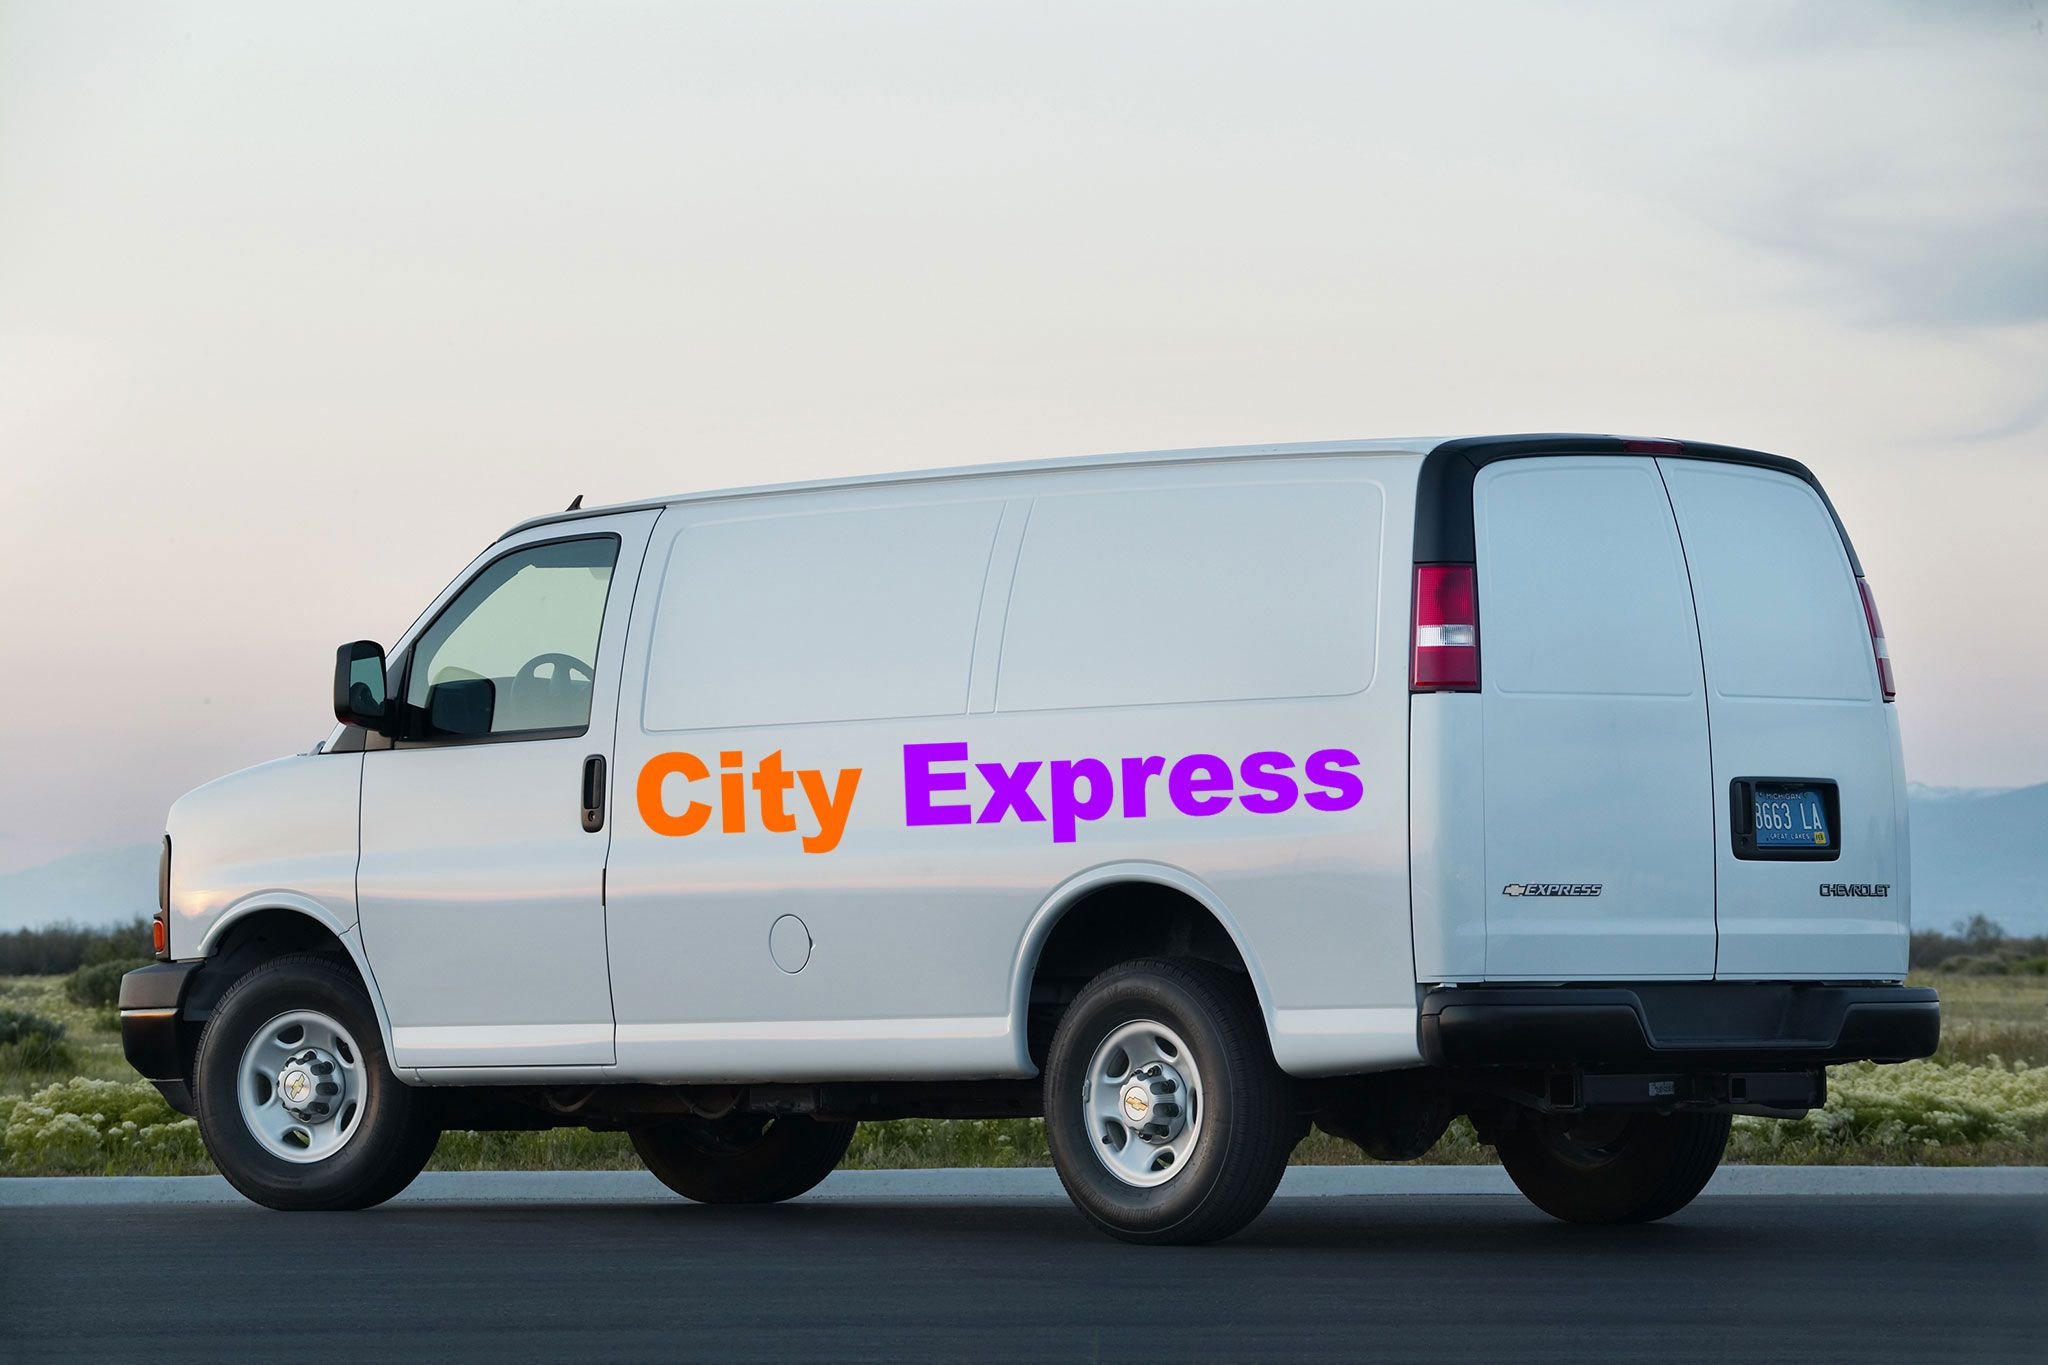 City Express Is Also One Of The World S Largest And Most Honored